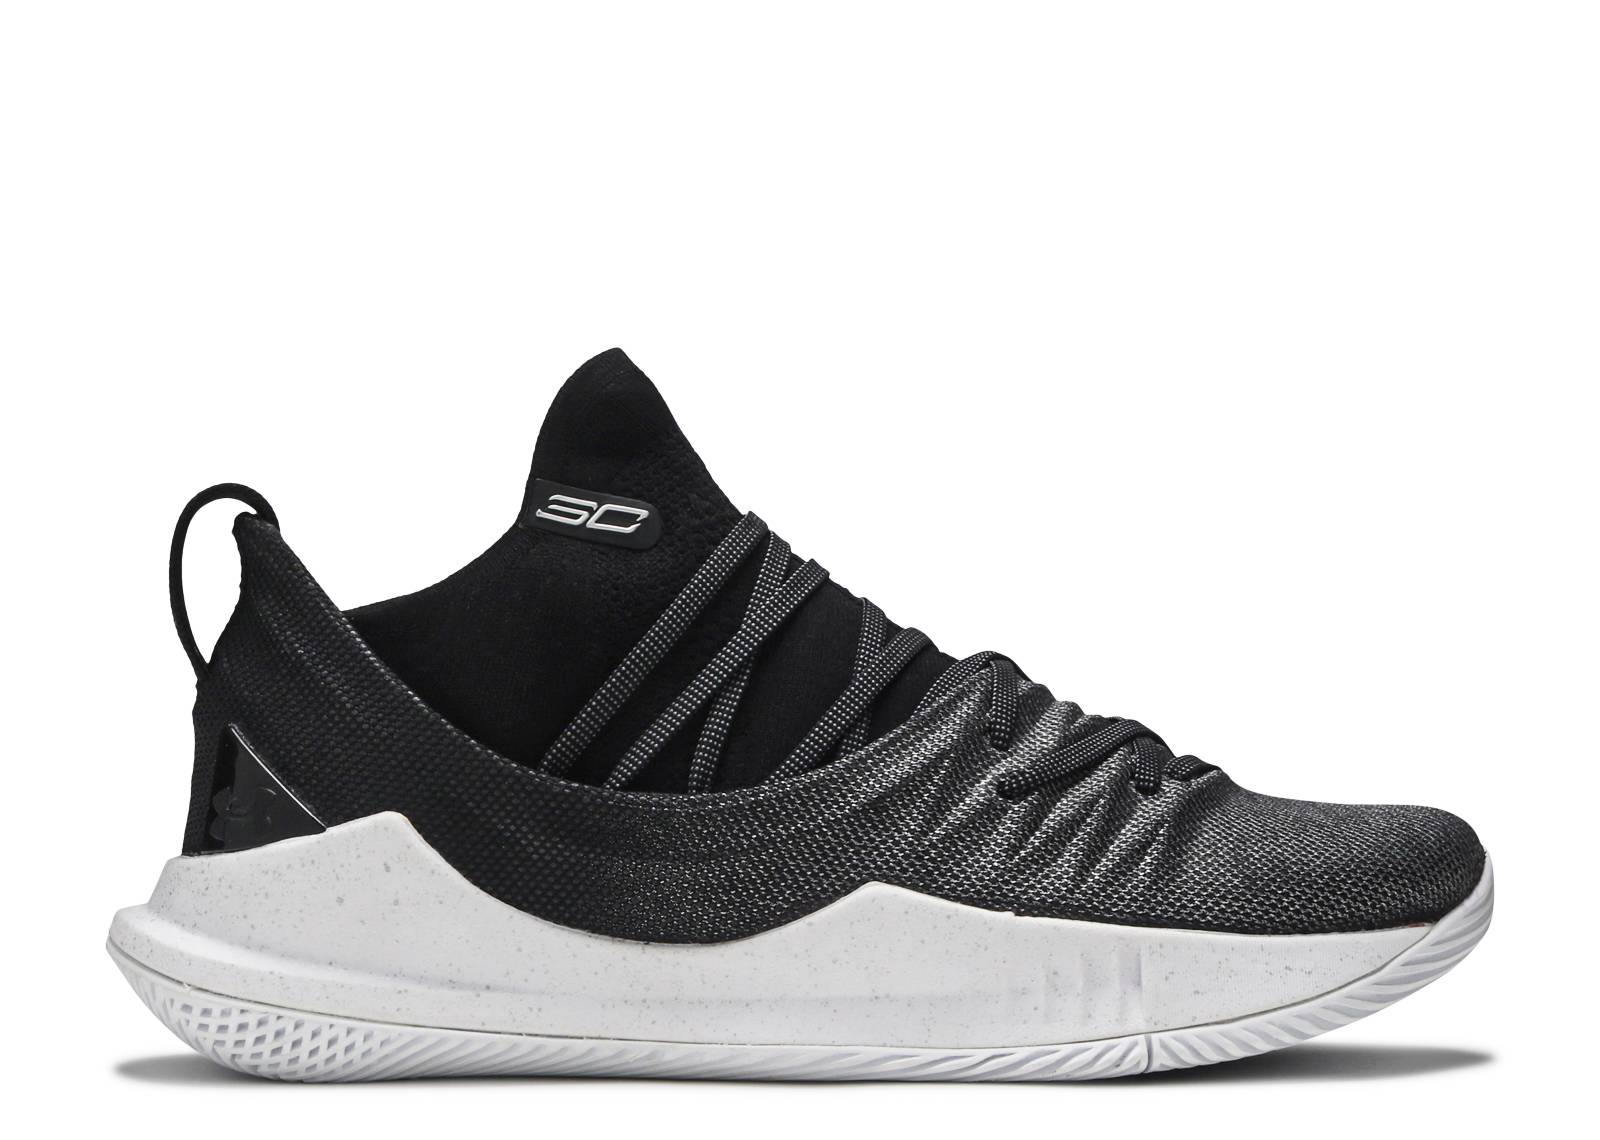 63d0e74ef013 Ua Curry 5 - Under Armour - 3020657 101 - black white